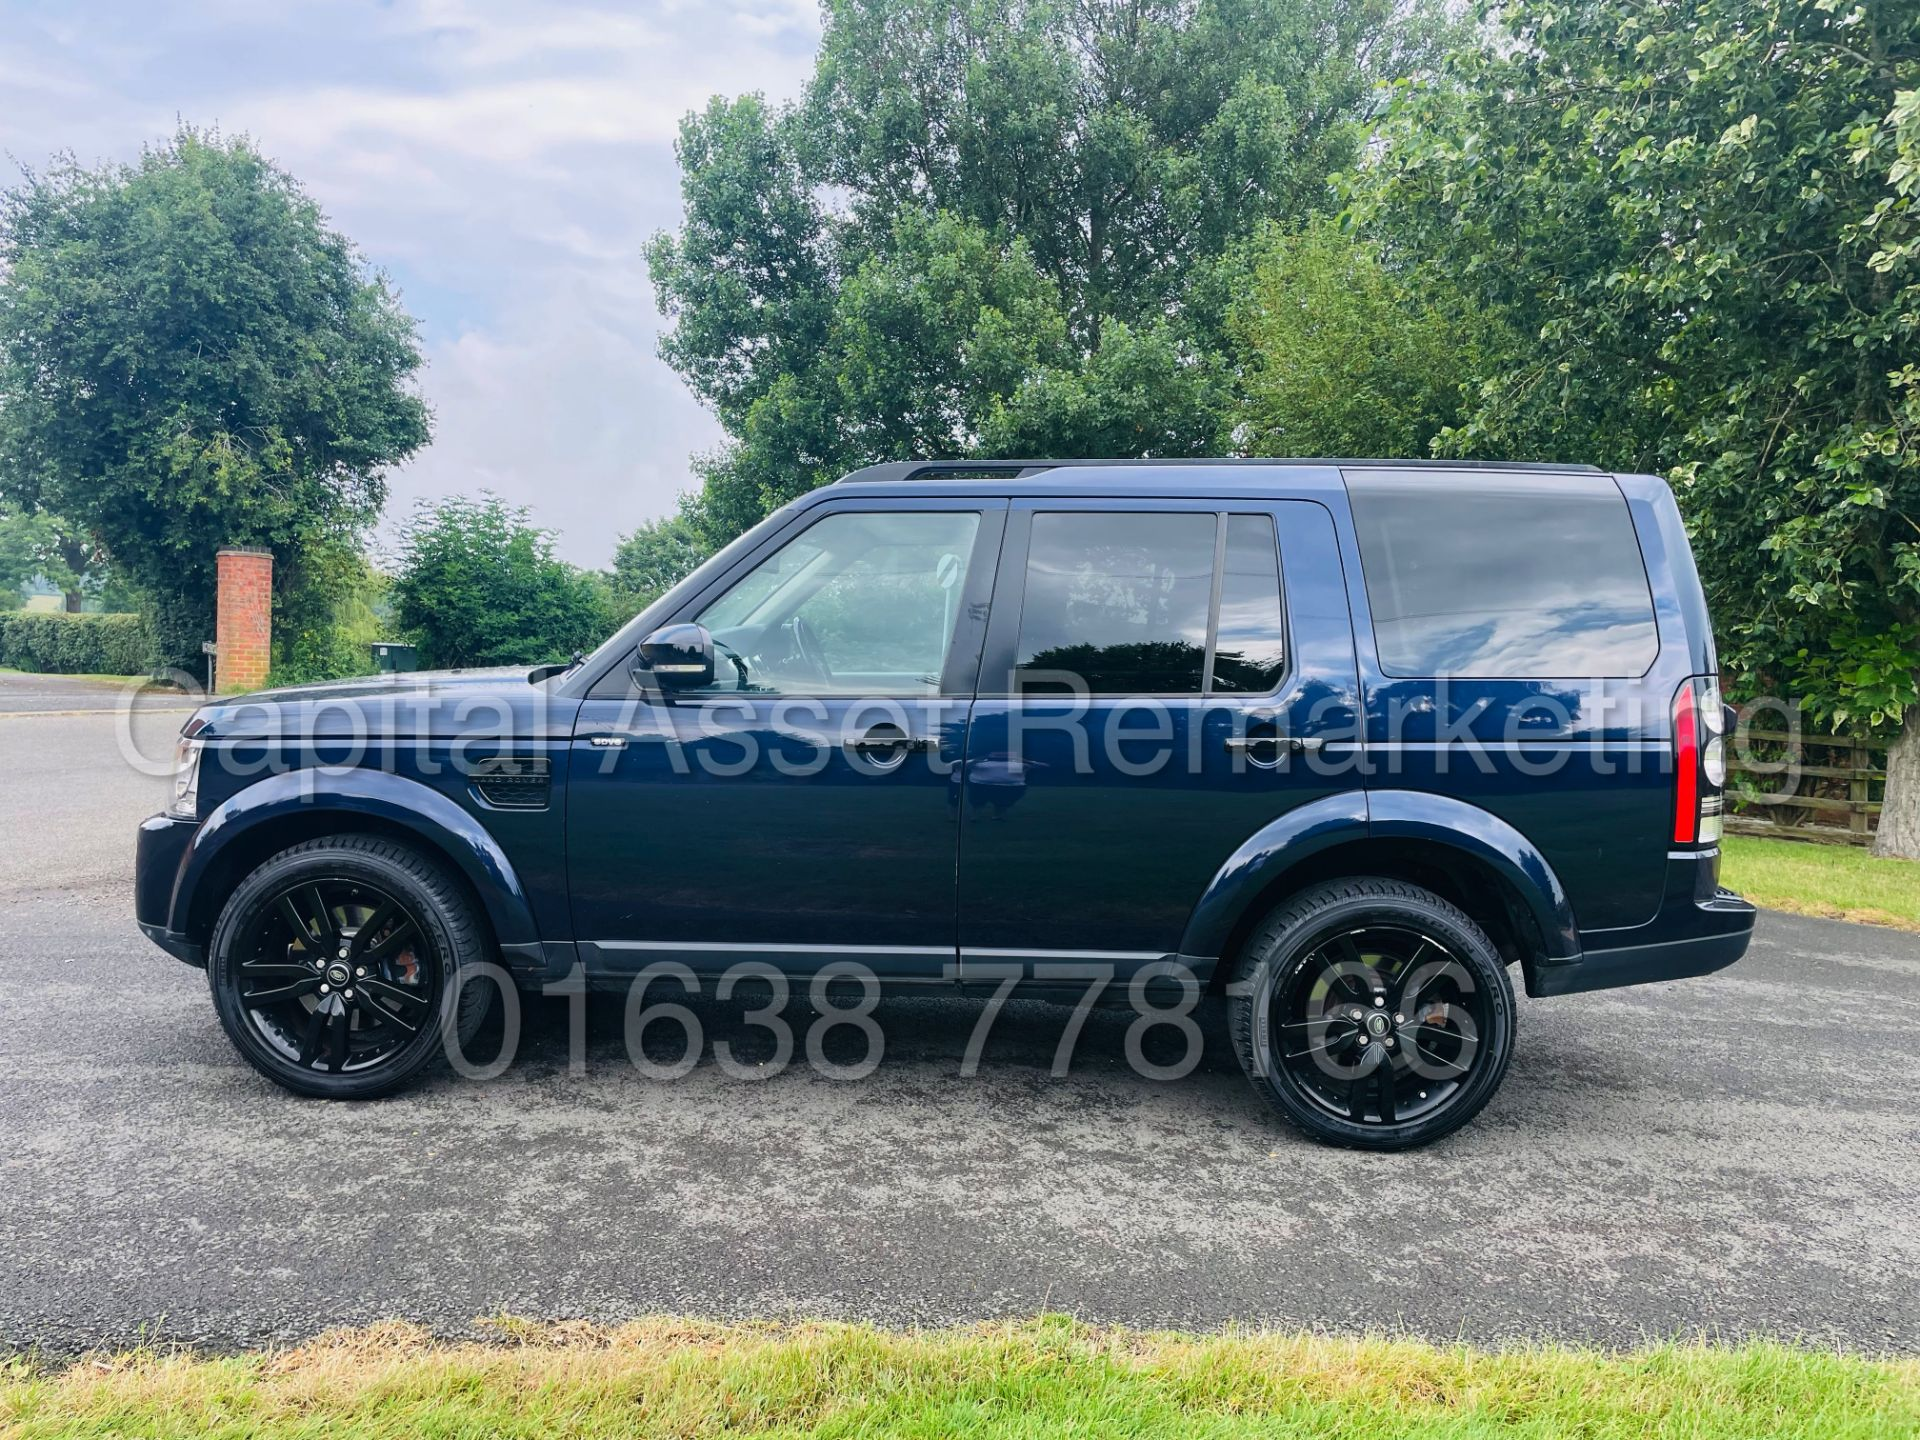 LAND ROVER DISCOVERY 4 *HSE* 7 SEATER SUV (2014 - NEW MODEL) '3.0 SDV6 - 255 BHP - 8 SPEED AUTO' - Image 4 of 61